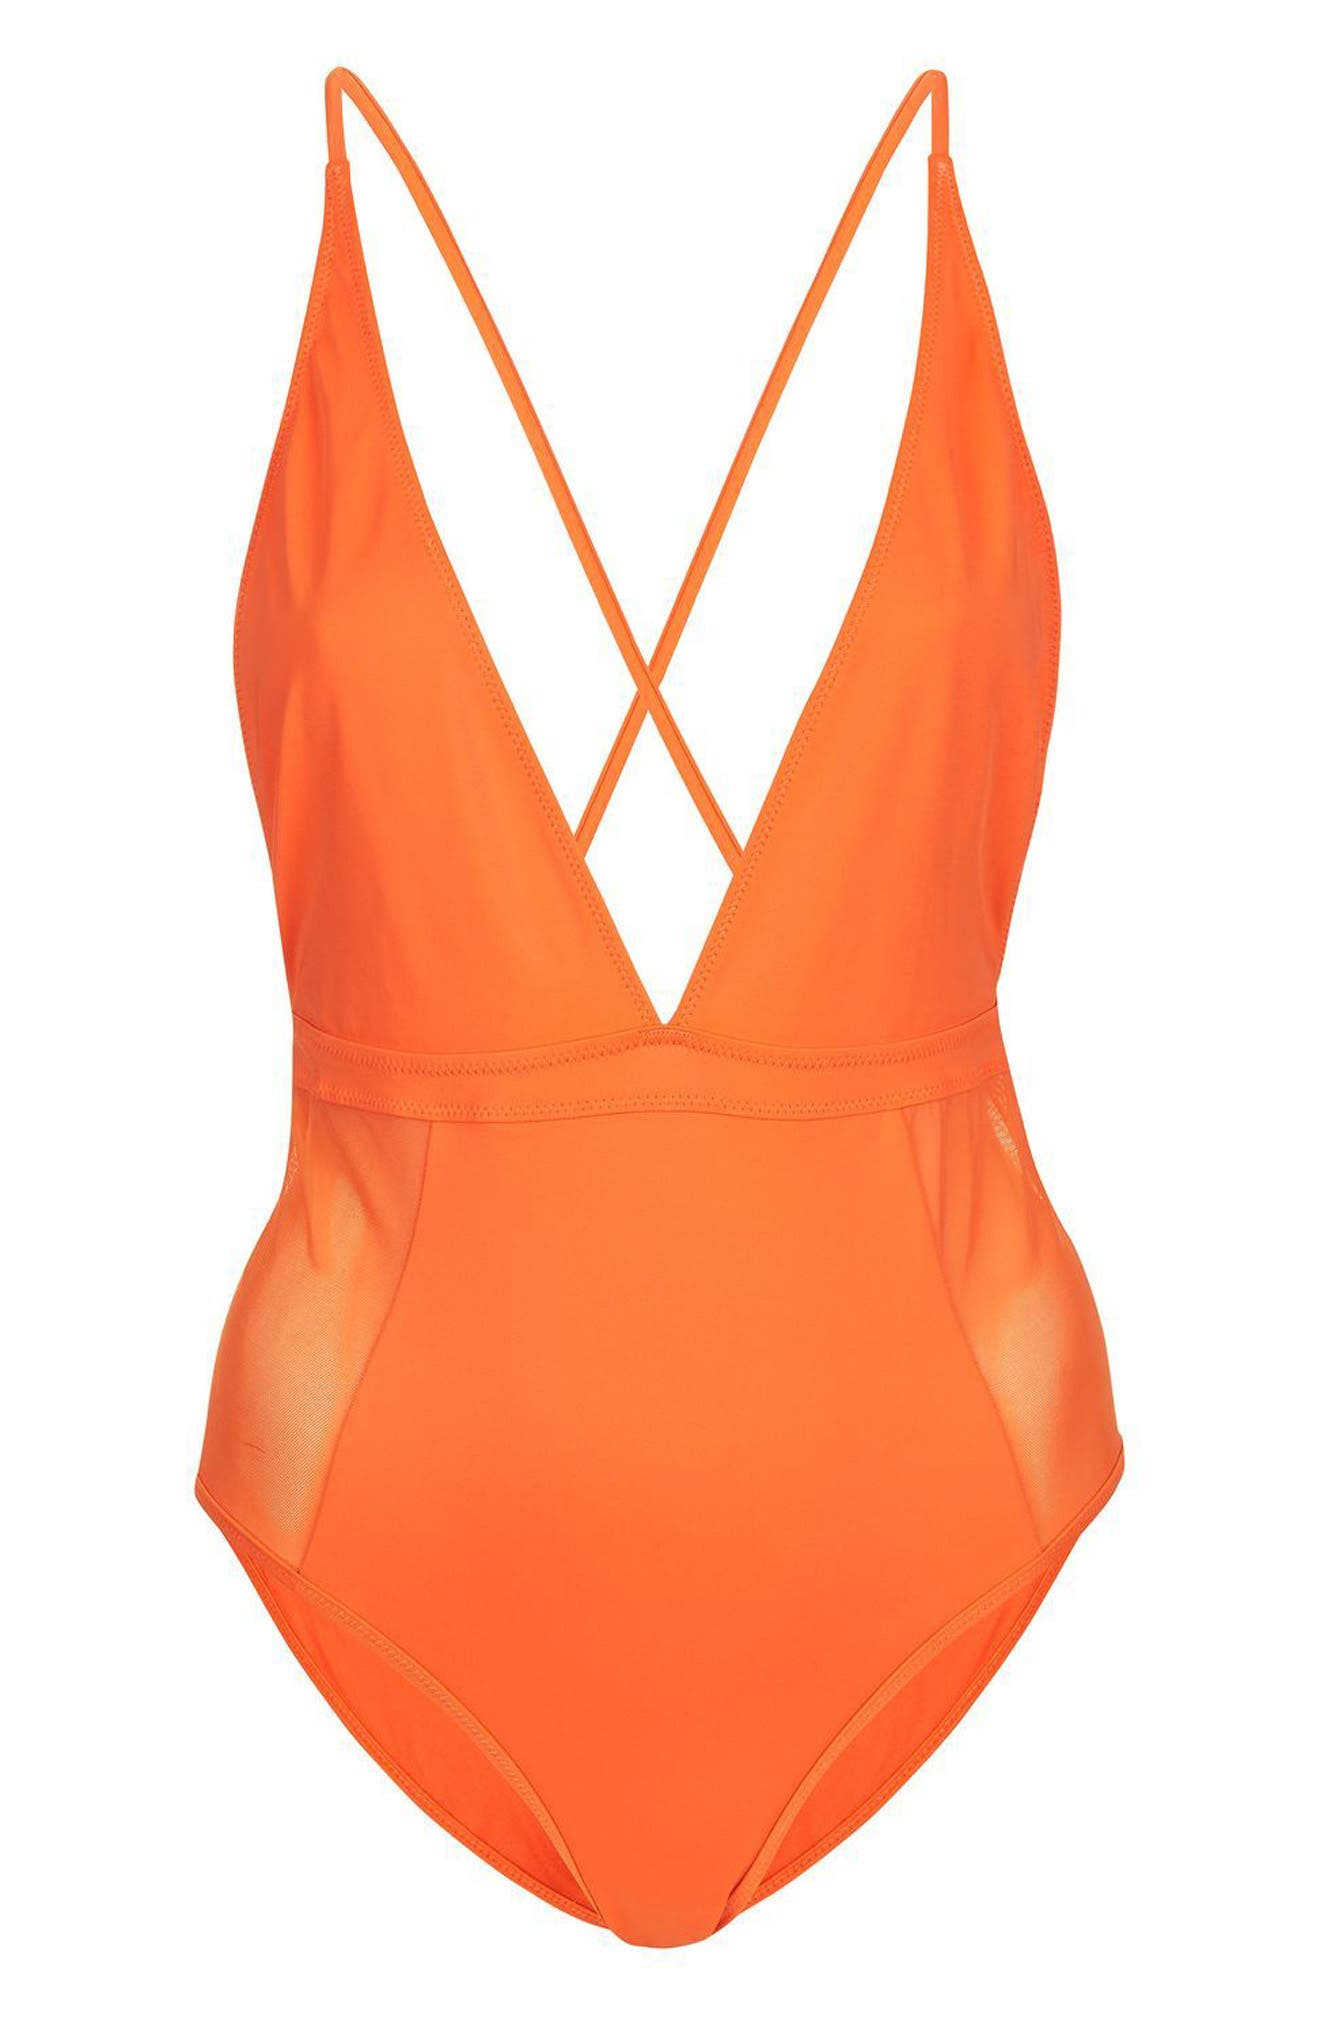 Alternate Image 1 Selected - Topshop Cindy One-Piece Swimsuit